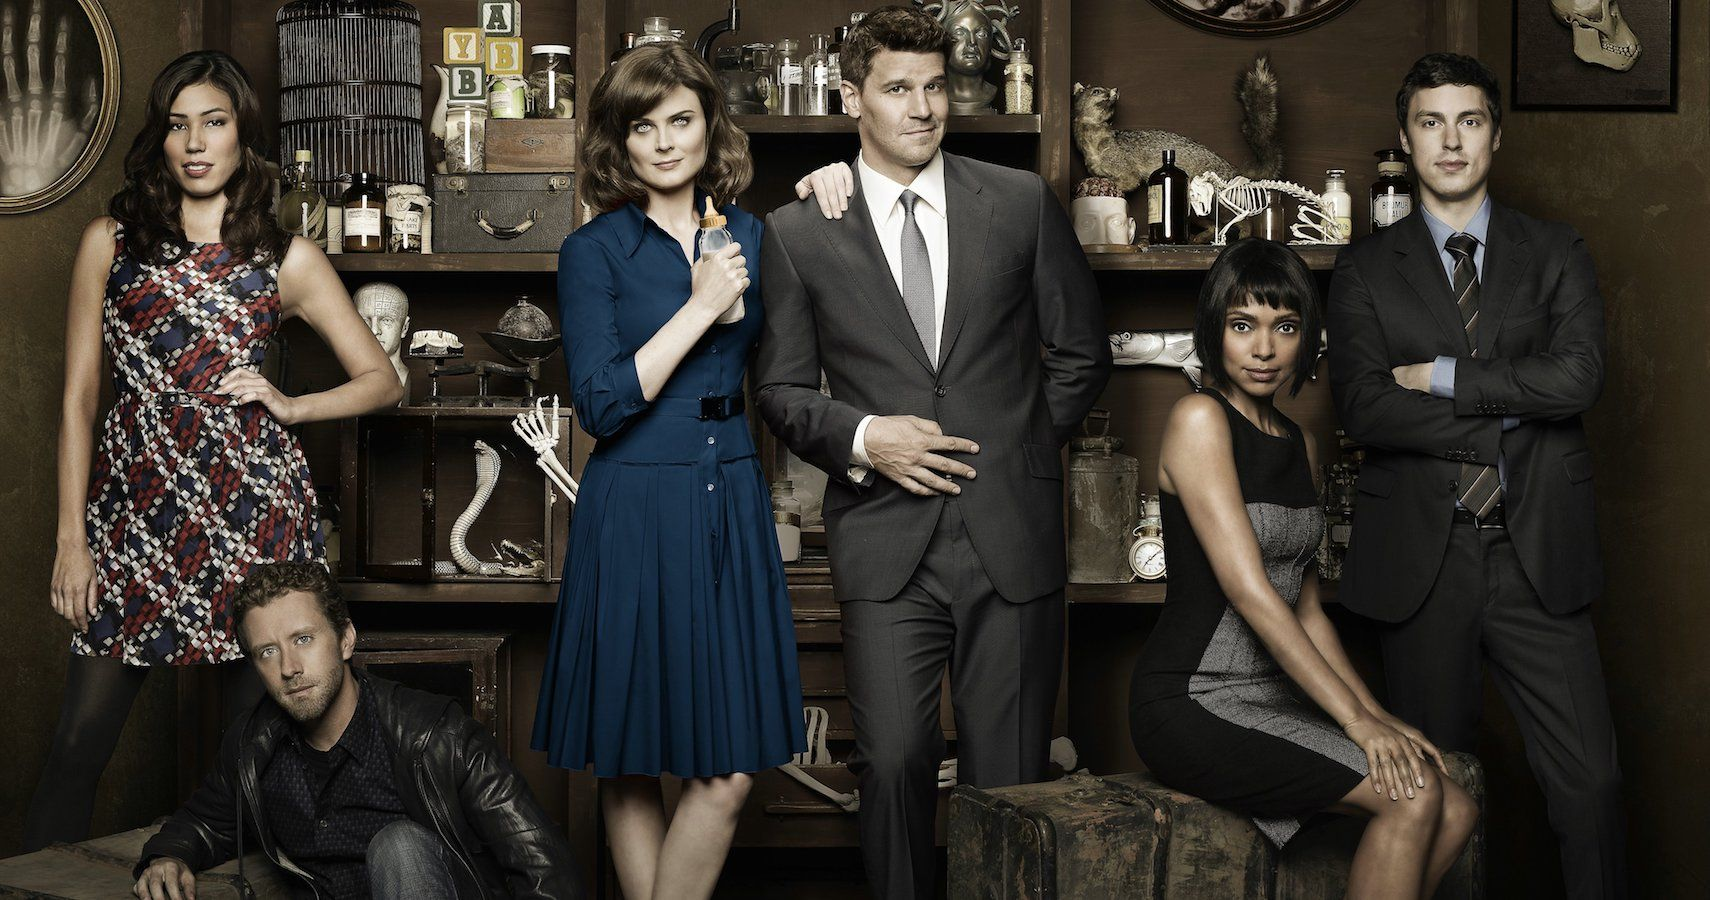 Bones The Best Episode In Every Season Ranked Screenrant